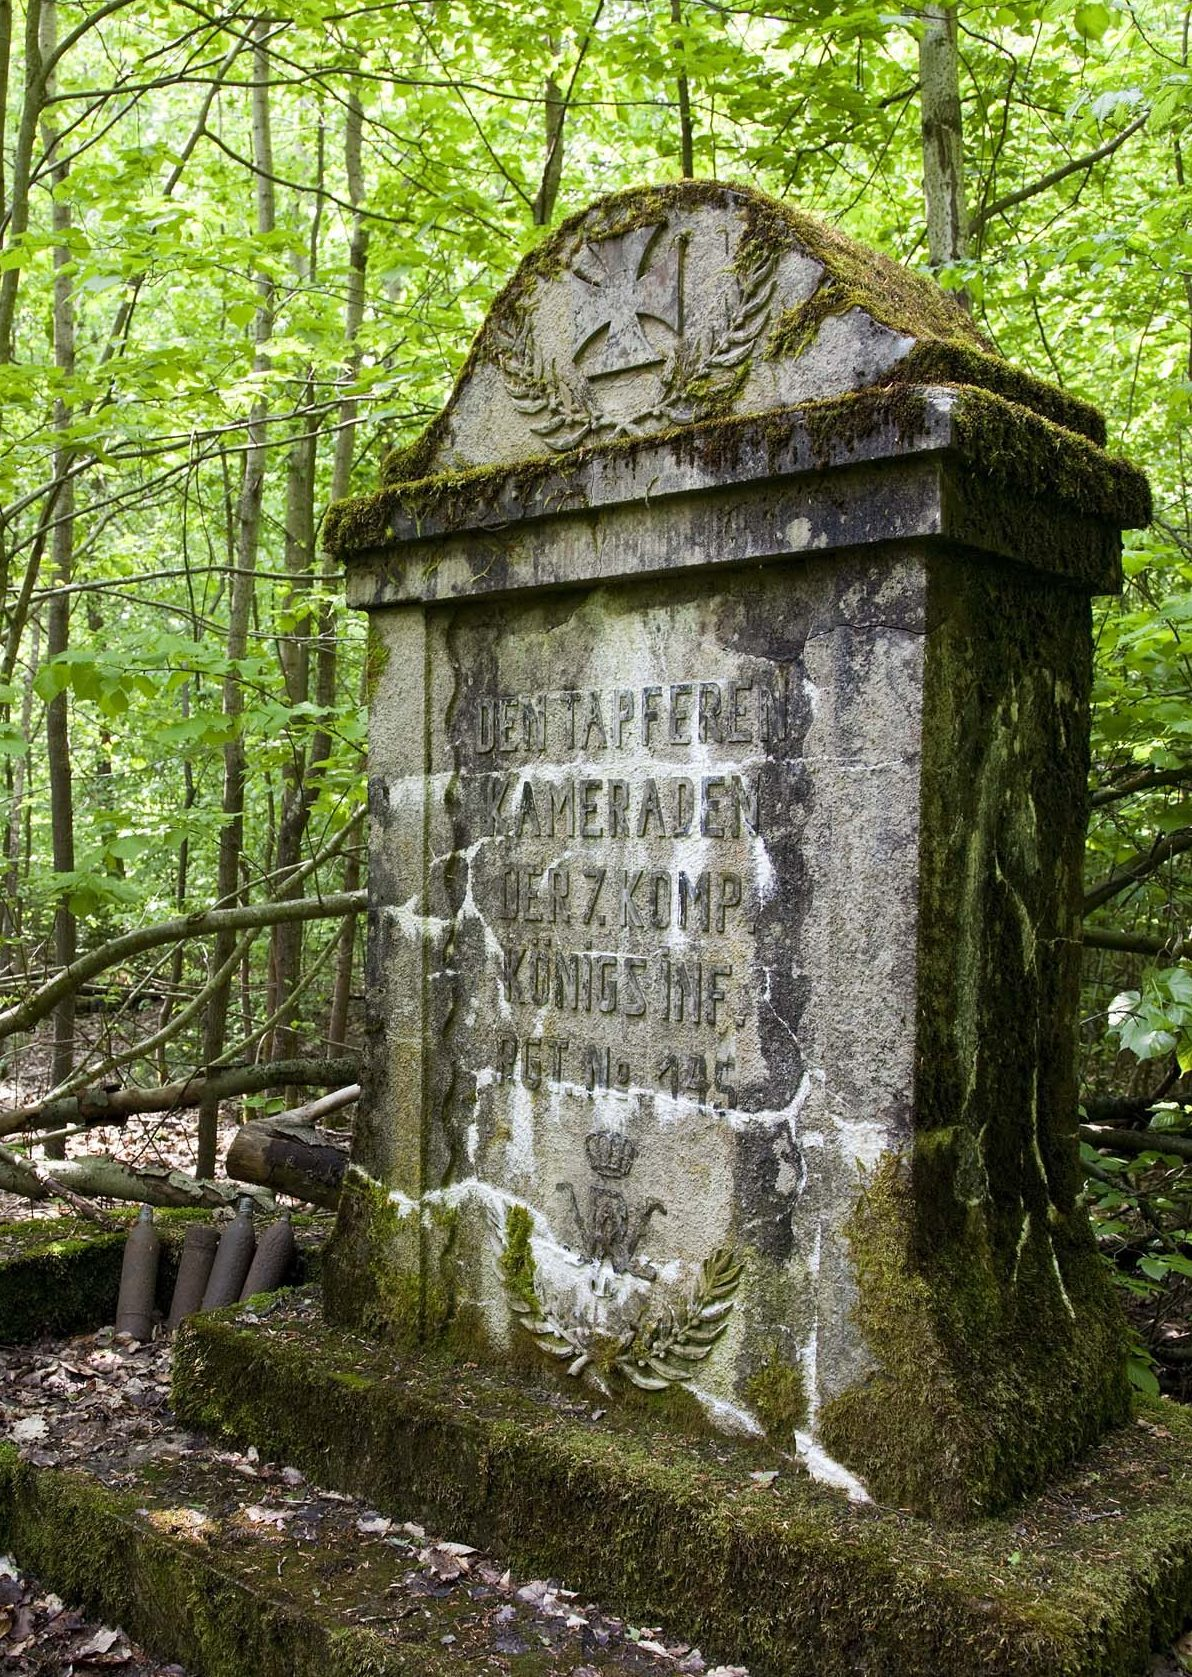 Monument from German Infantry Regiment 145 in the Argonne Forest